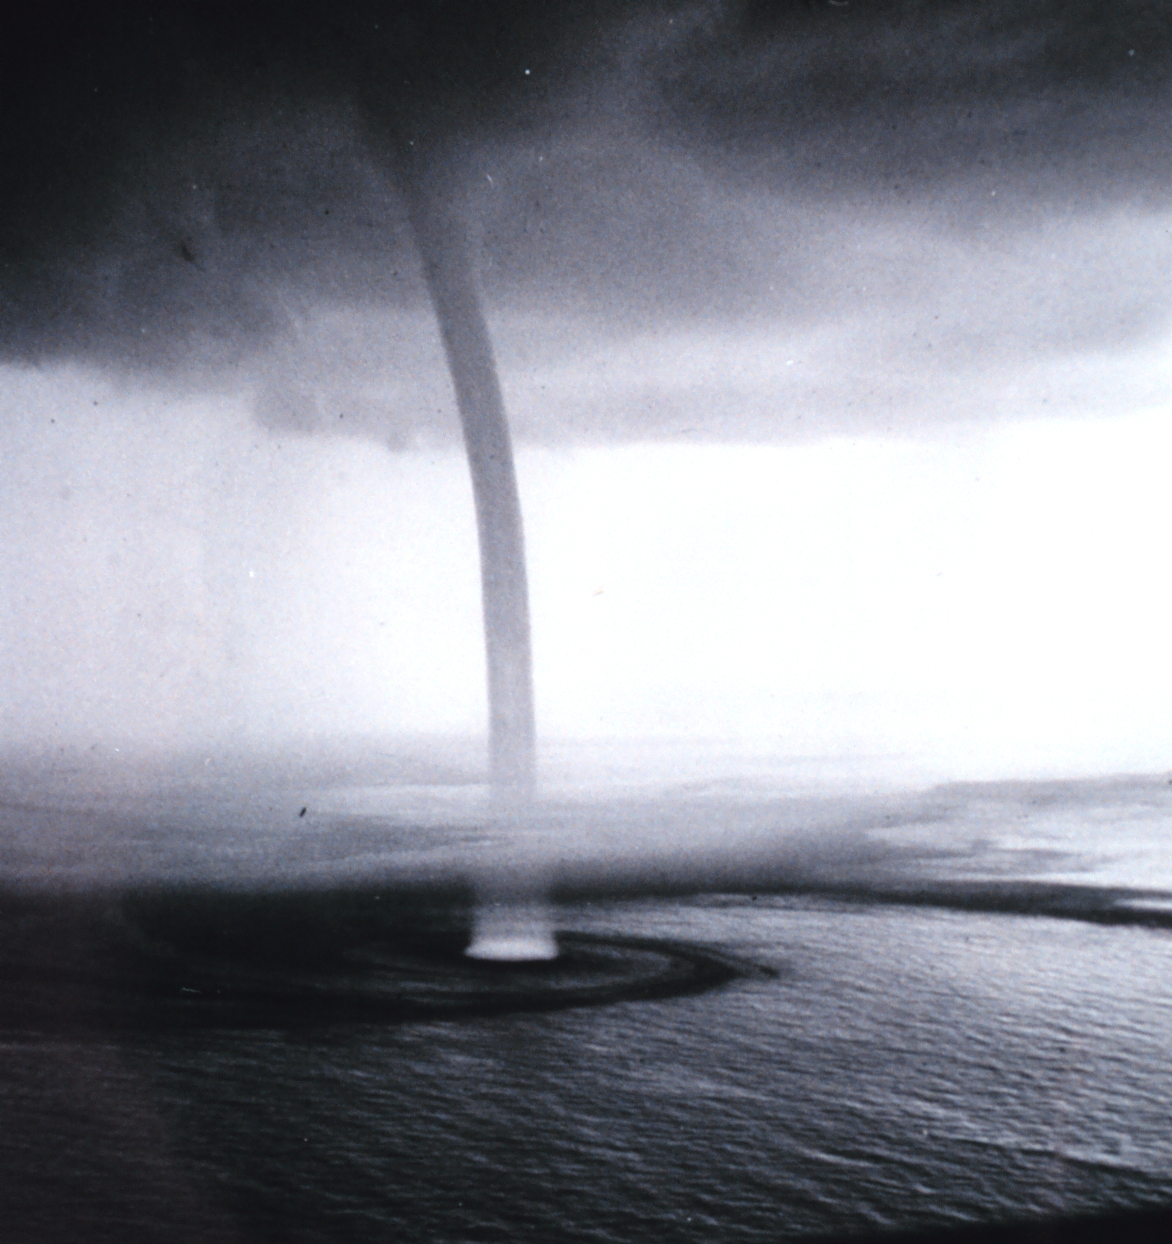 water spouts Define waterspout: a pipe, duct, or orifice from which water is spouted or through which it is carried — waterspout in a sentence.